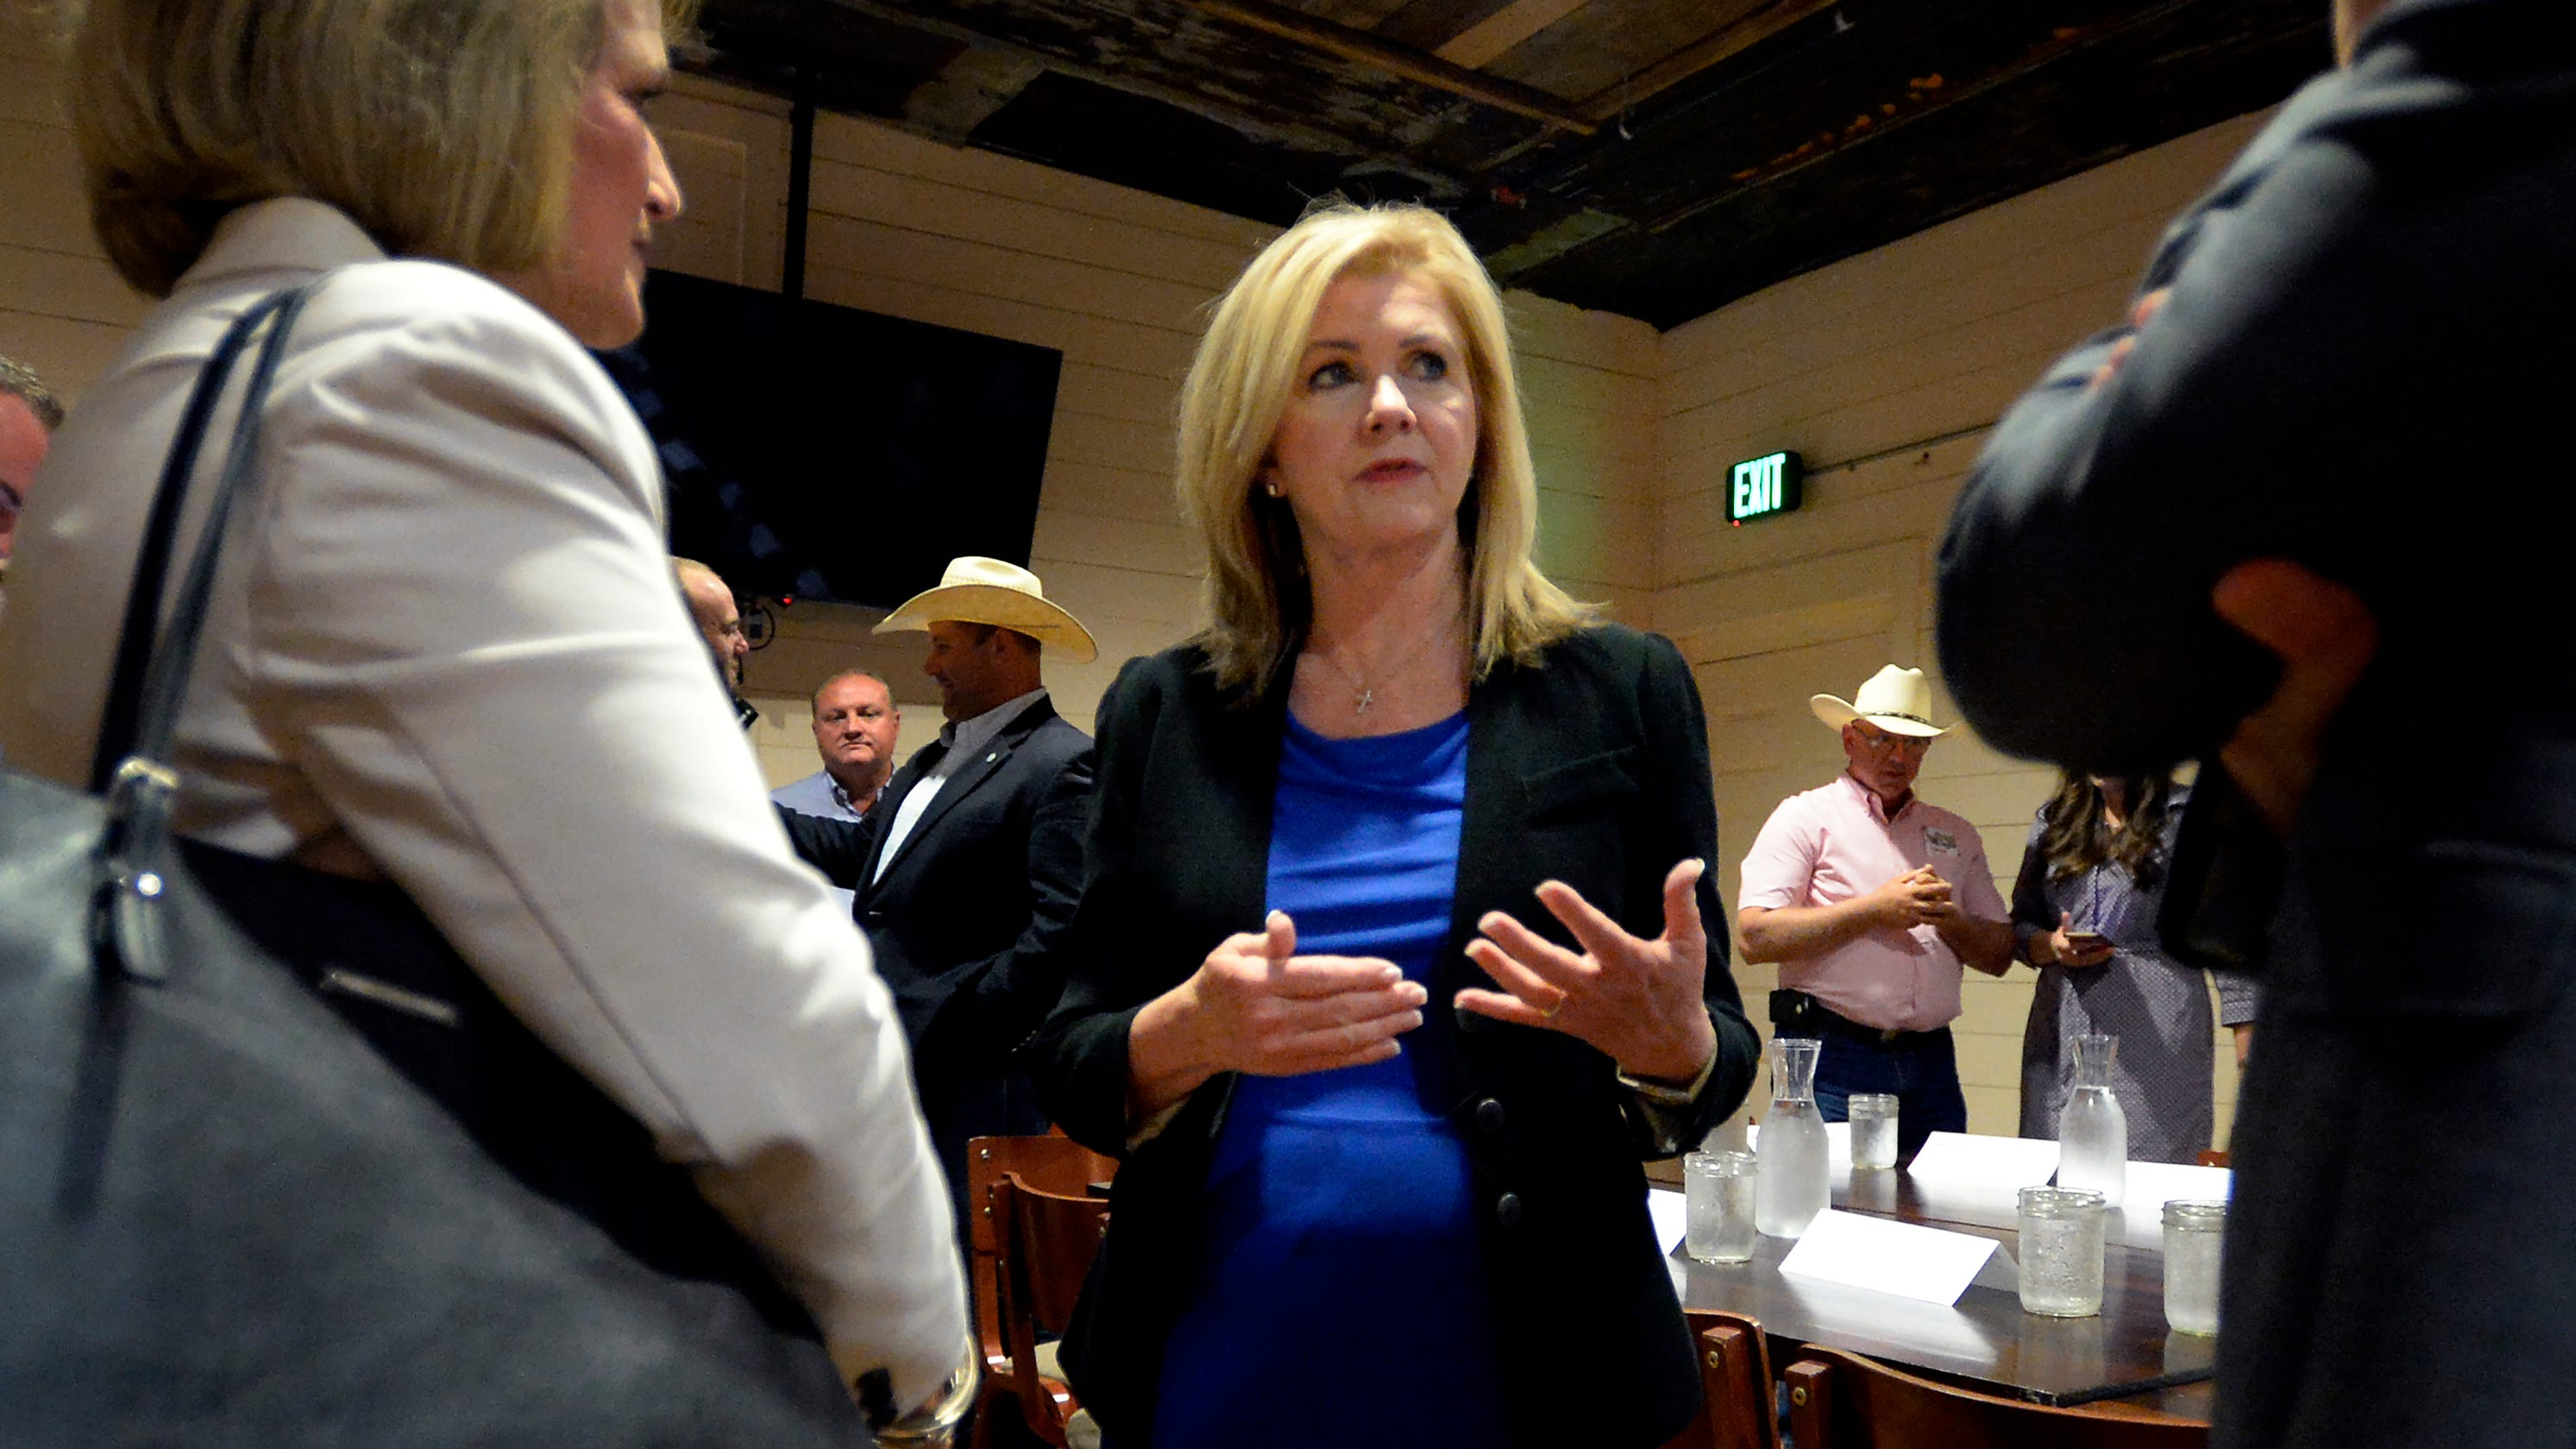 Tennessee elections: Blackburn didn't disclose line of credit